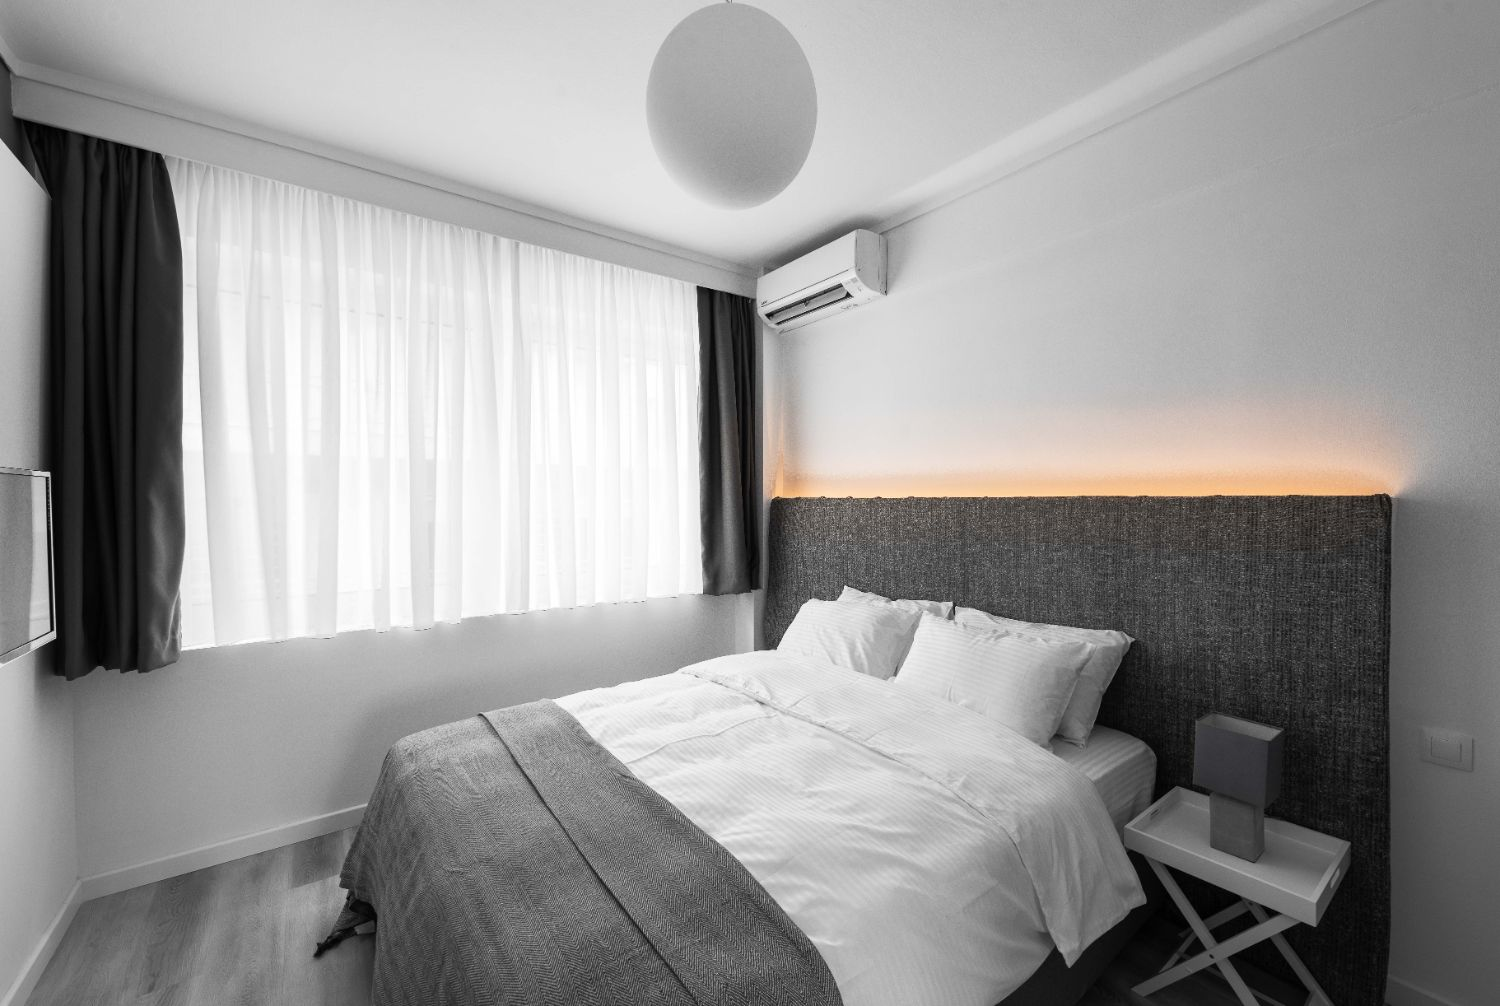 Suite #2, Bedroom area with 1 double bed